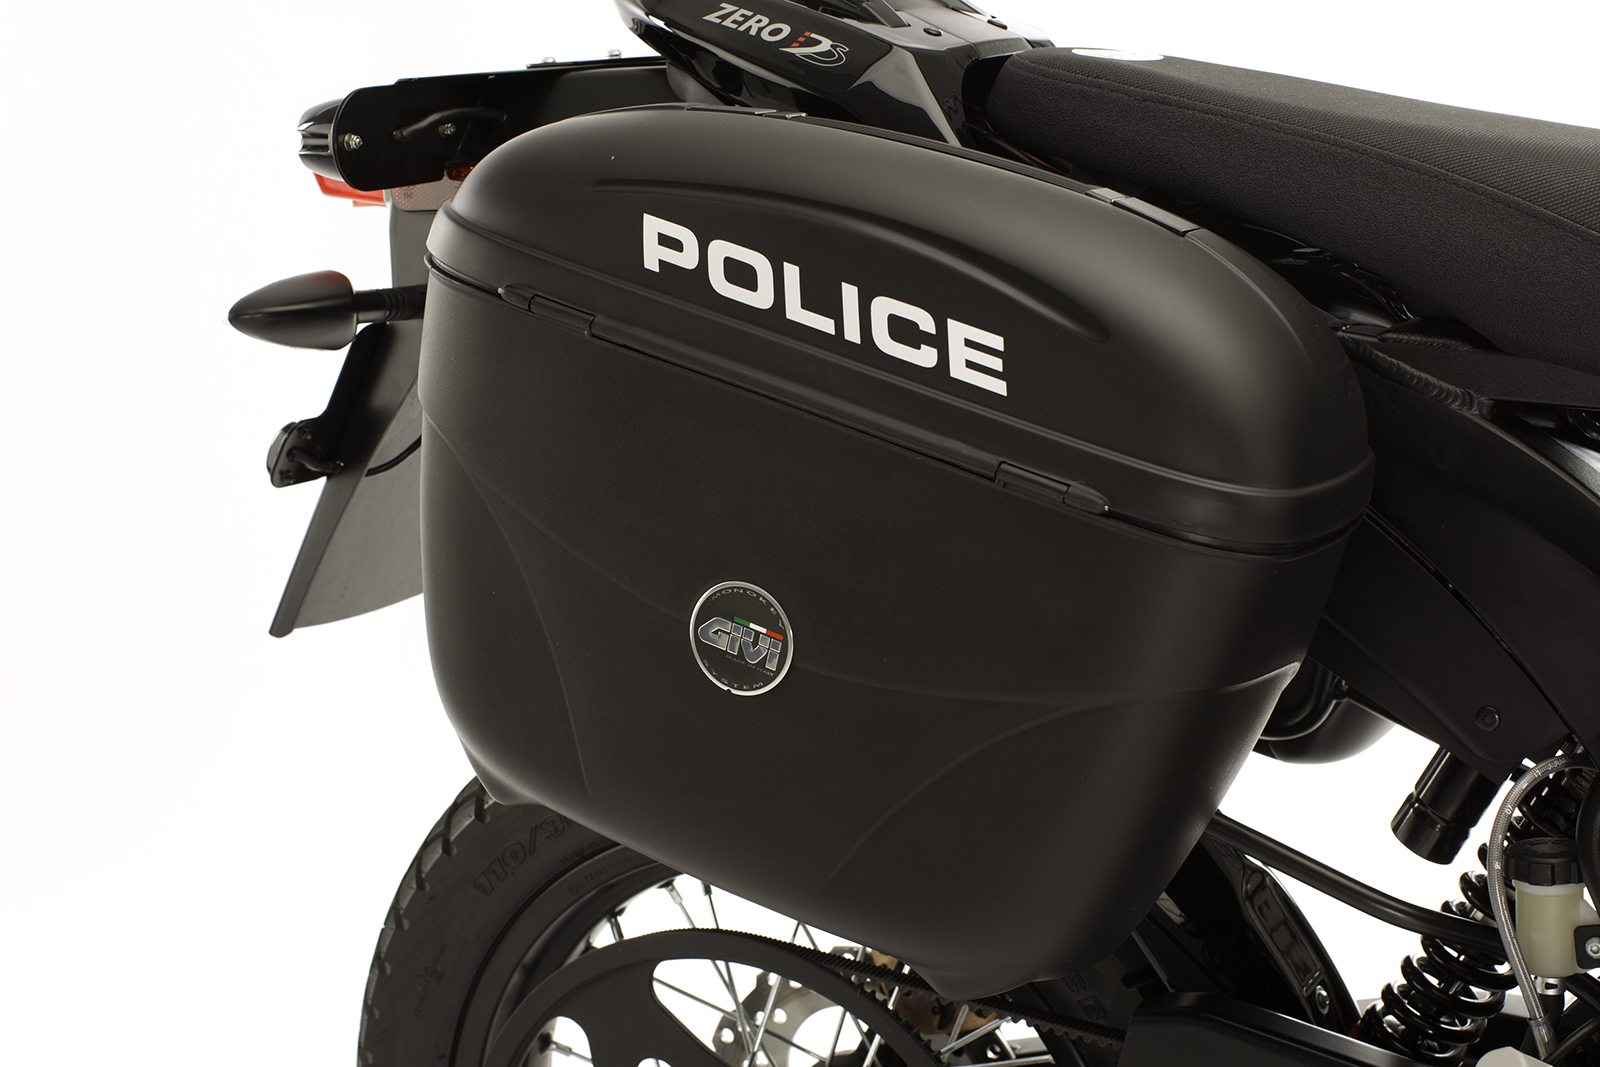 2012 Zero DS Police Motorcycles: Hard Saddle Bags/Mounts